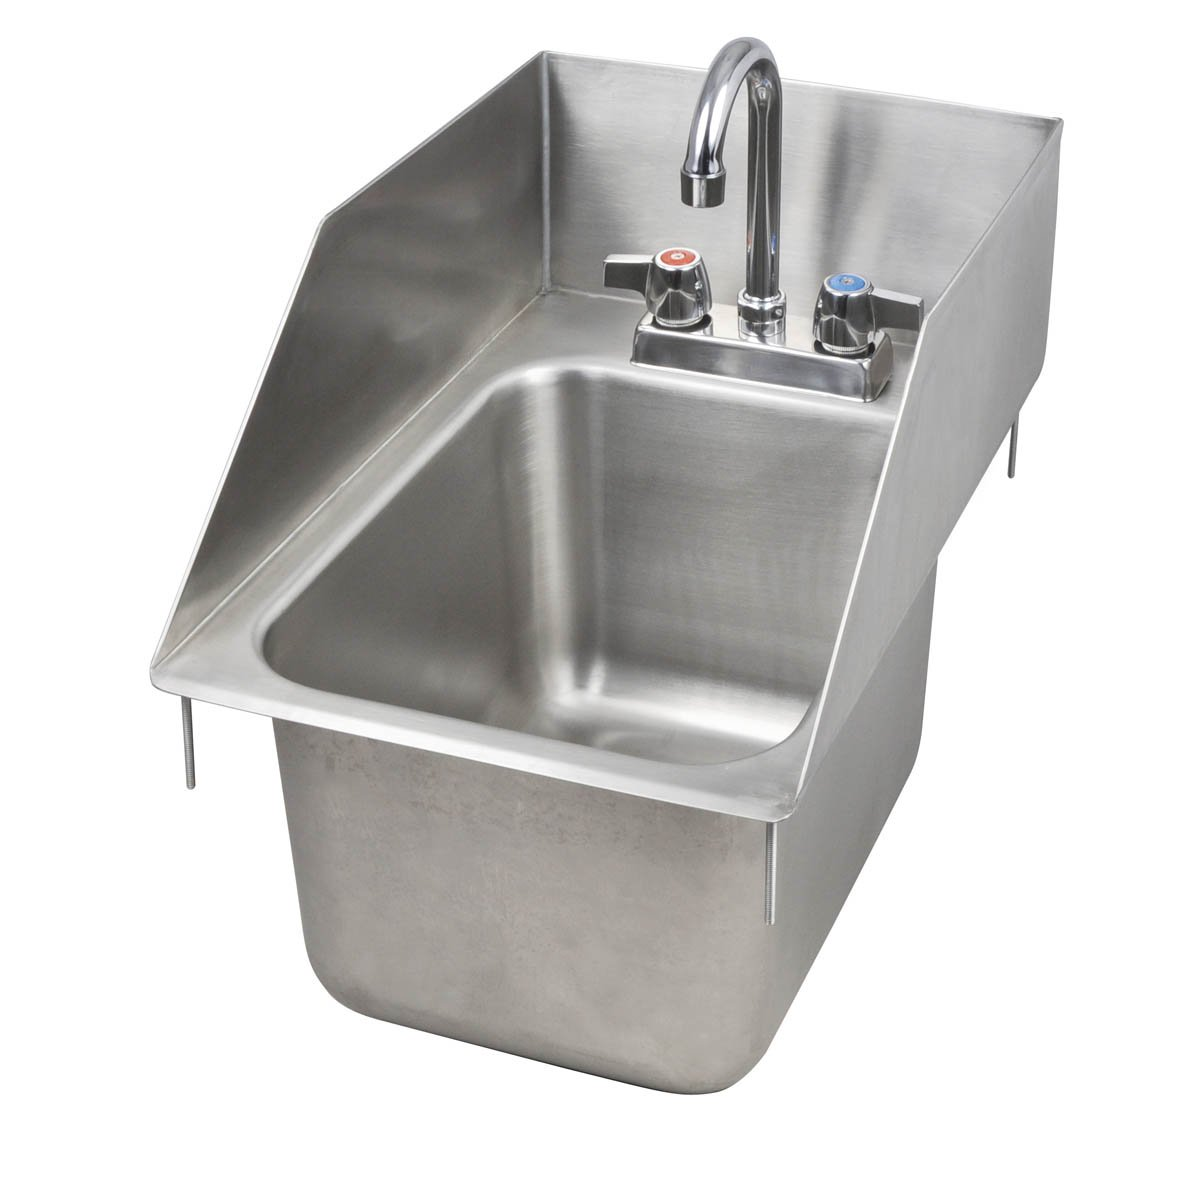 John Boos PB-DISINK101410-P-SSLR Deck Mount Pro-Bowl Drop-In Hand Sink, 14'' Length x 10'' Width x 10'' Depth, PBF-4-D Faucet, Left and Right Hand Side Splash